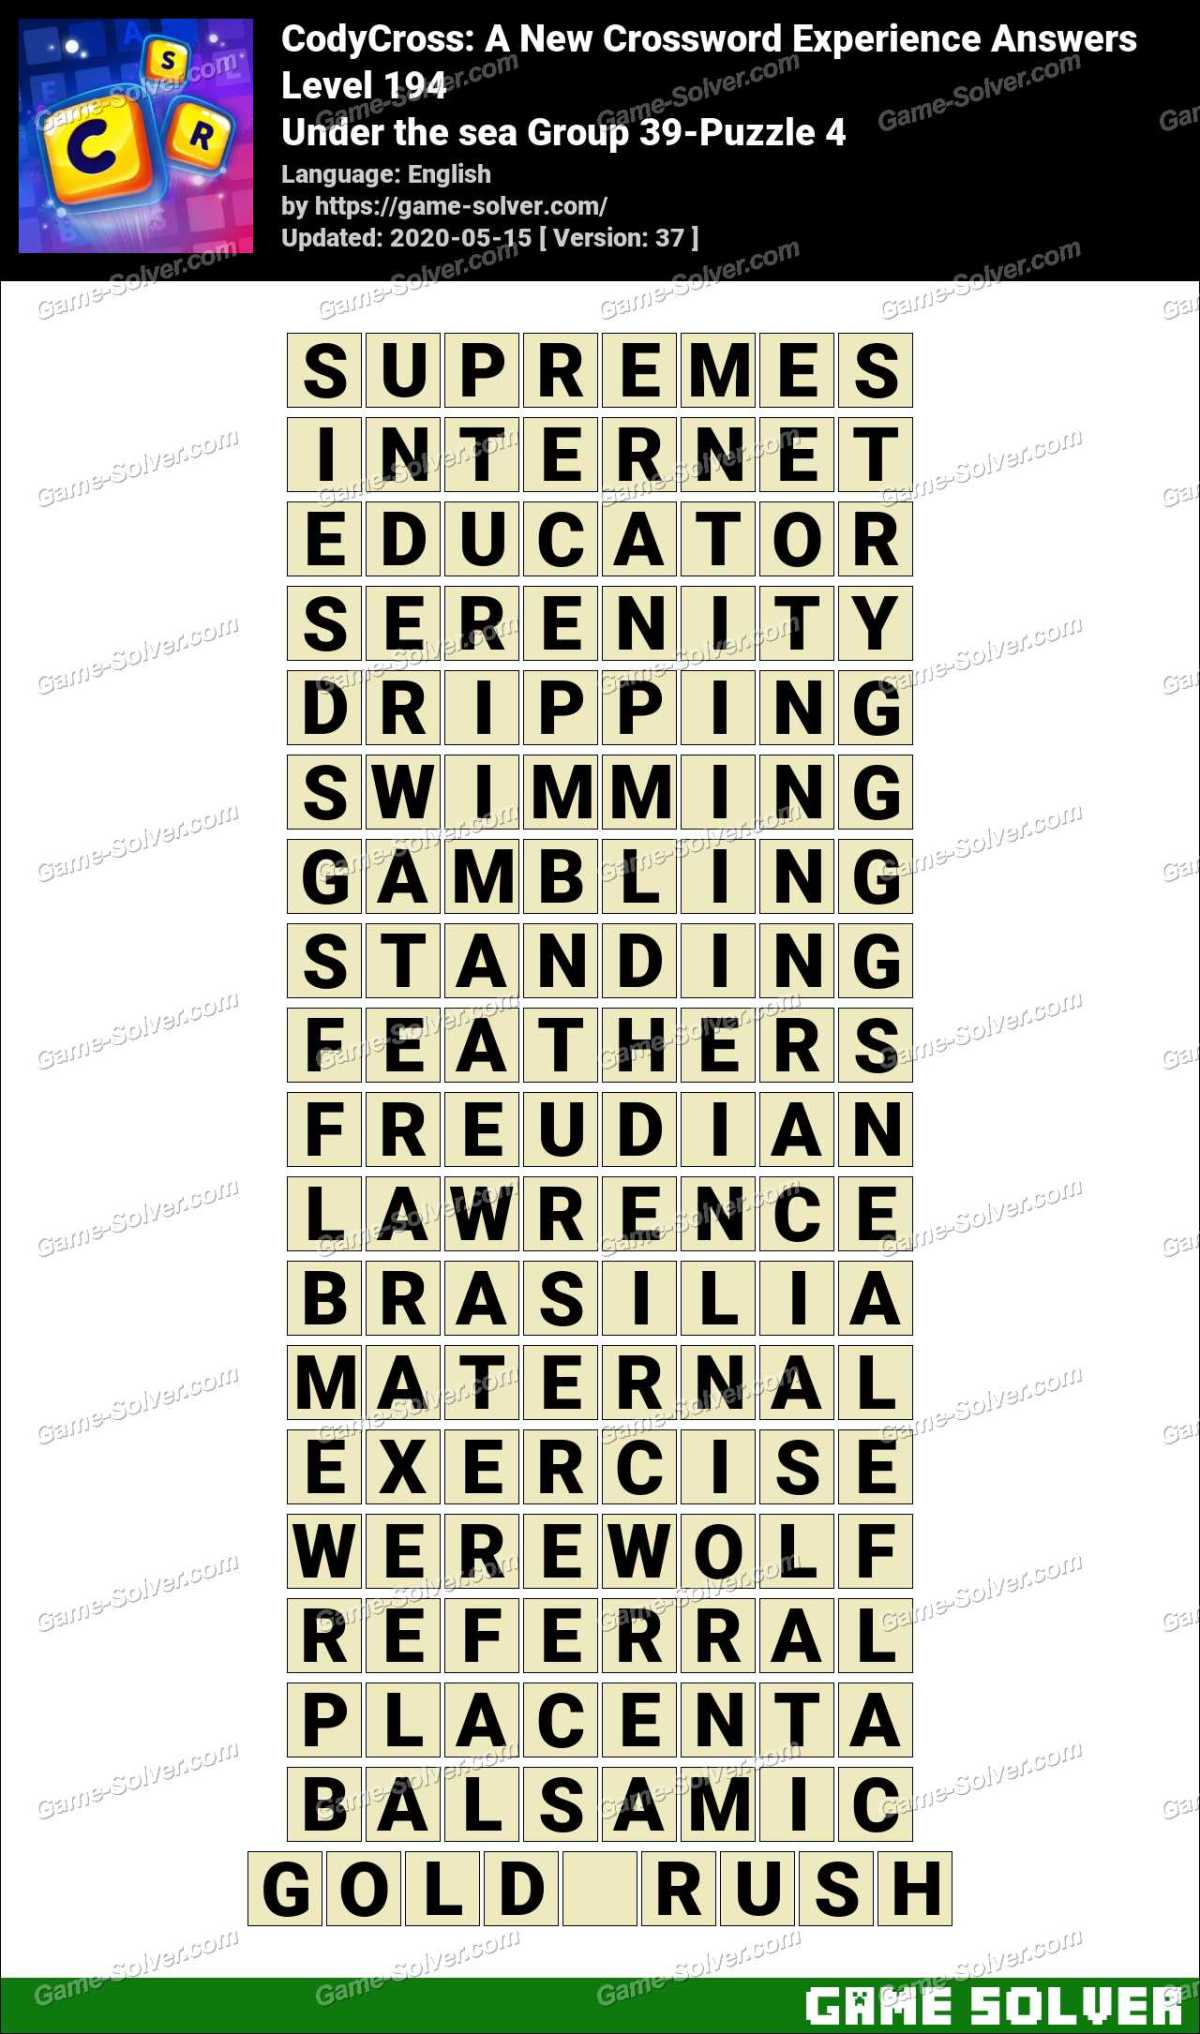 CodyCross Under the sea Group 39-Puzzle 4 Answers